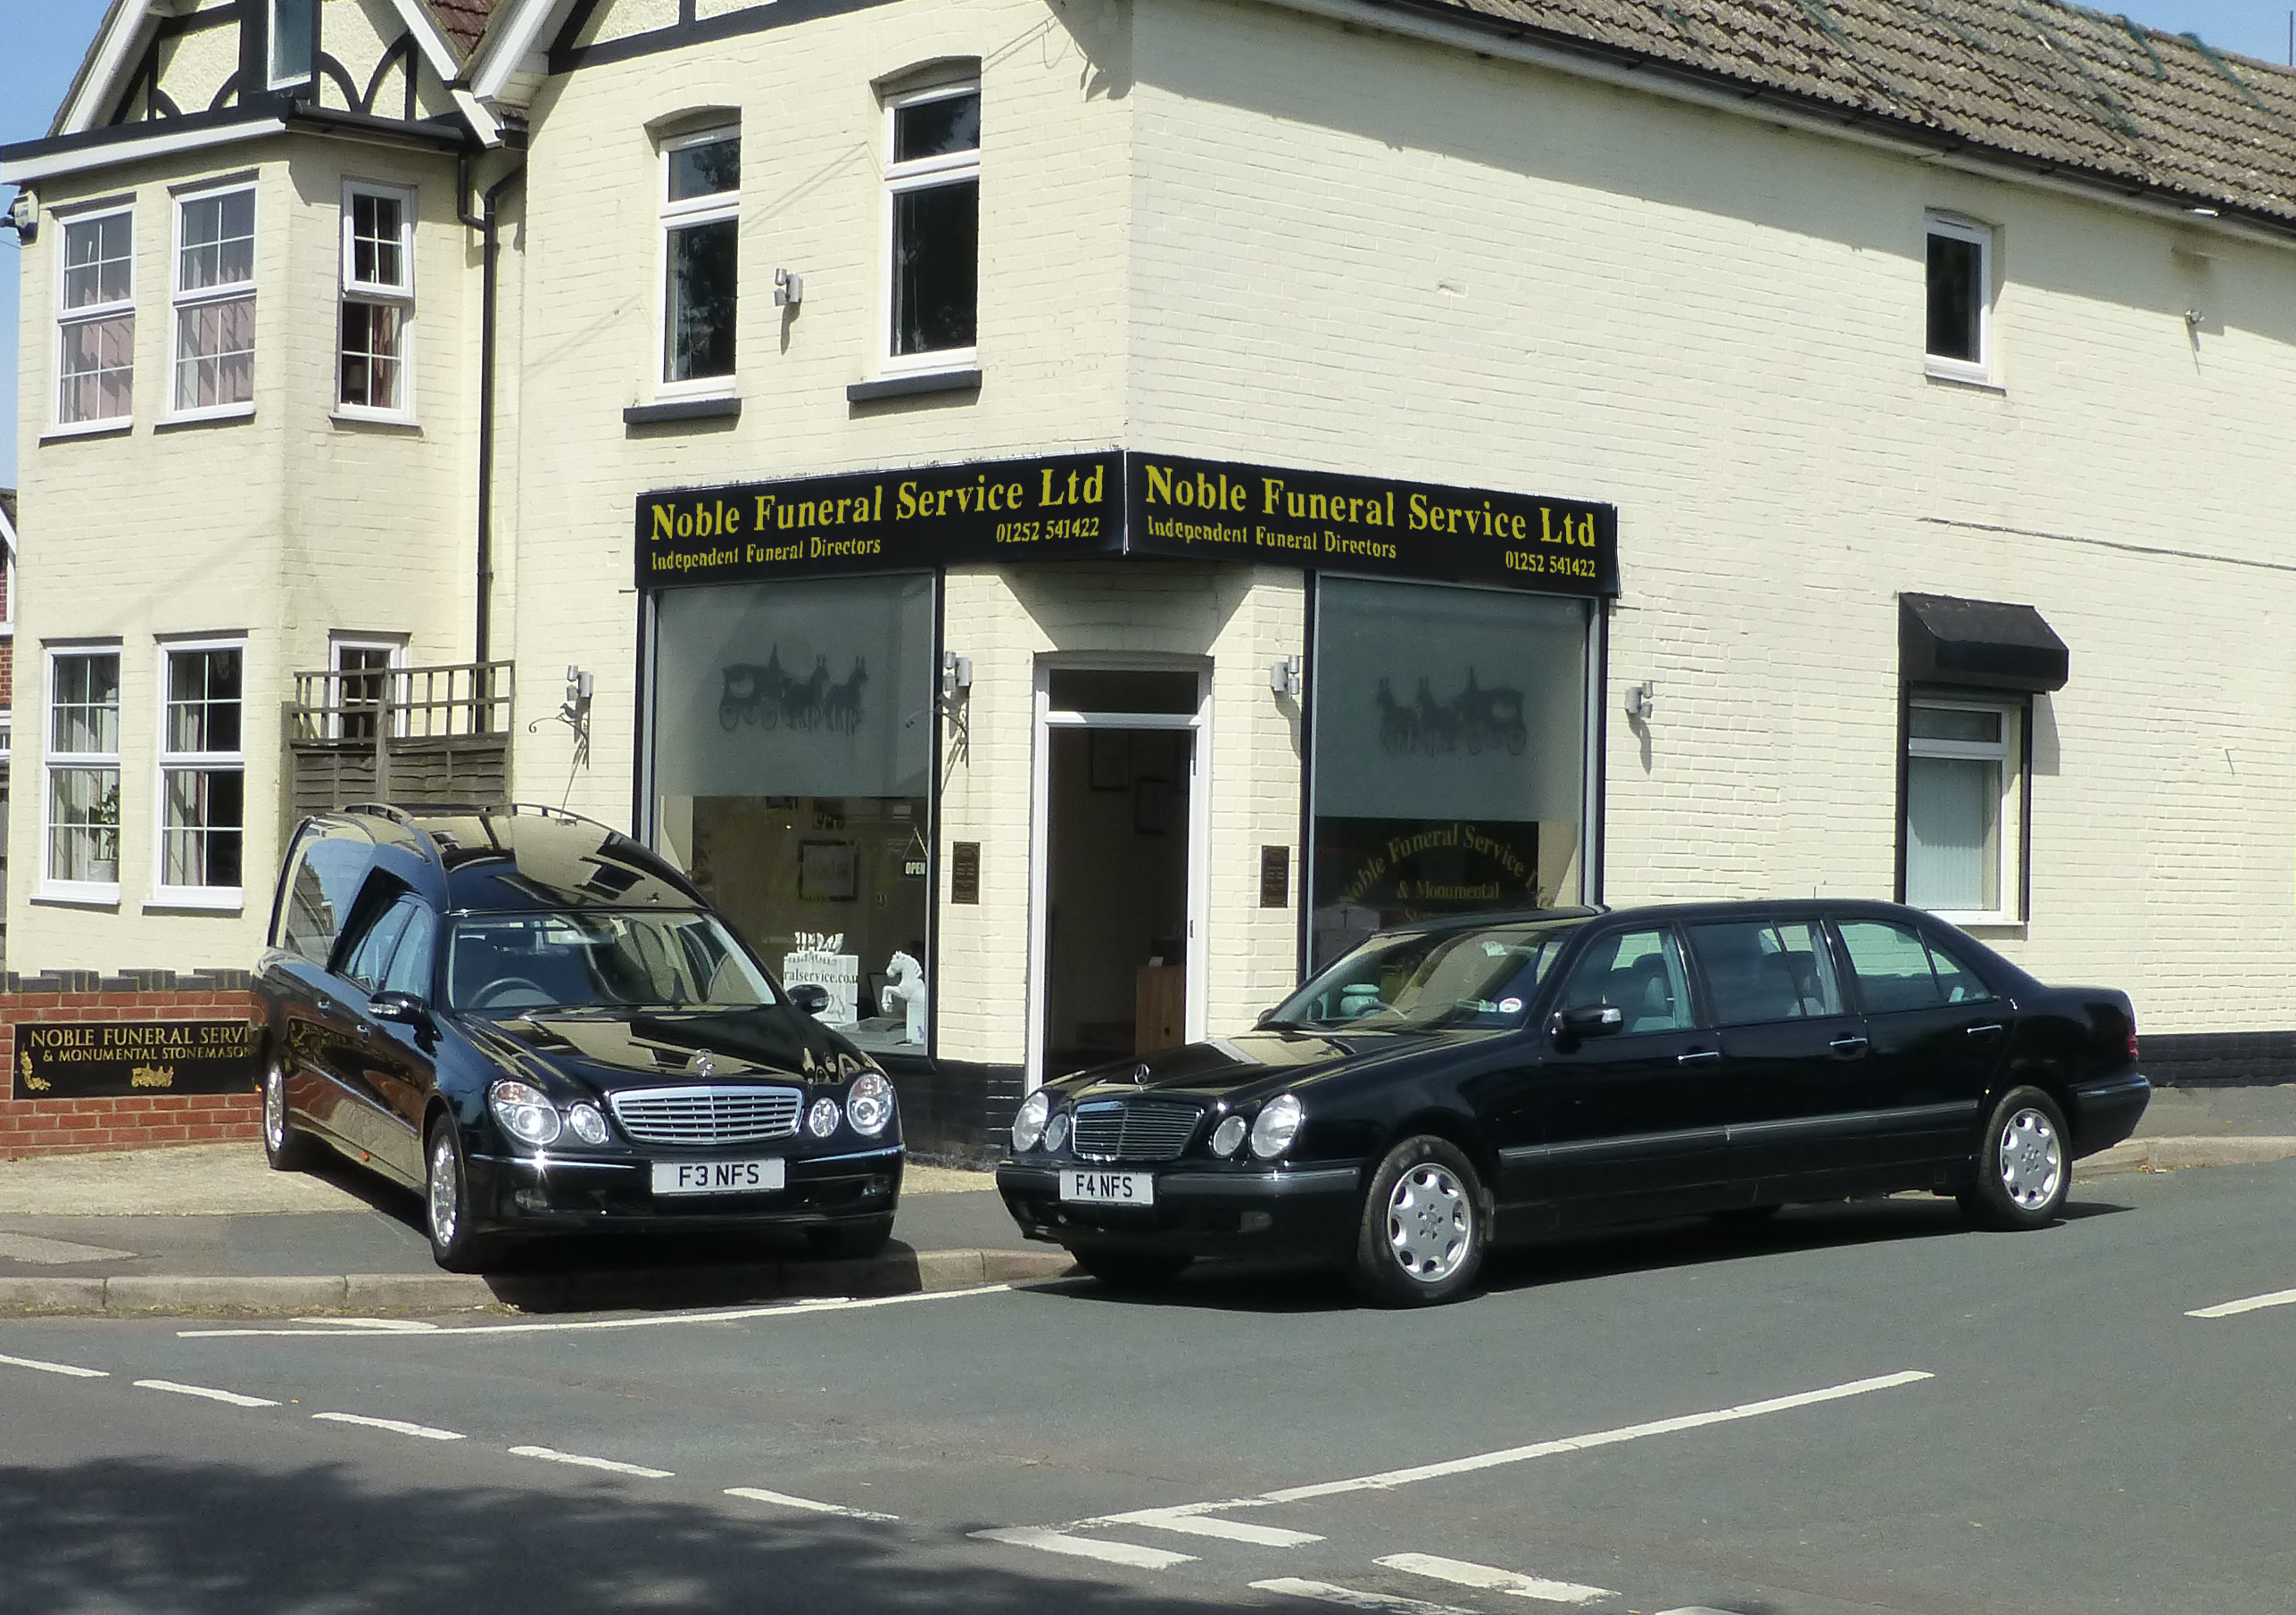 Noble Funeral Service continue to make the Superior choice for funeral vehicles